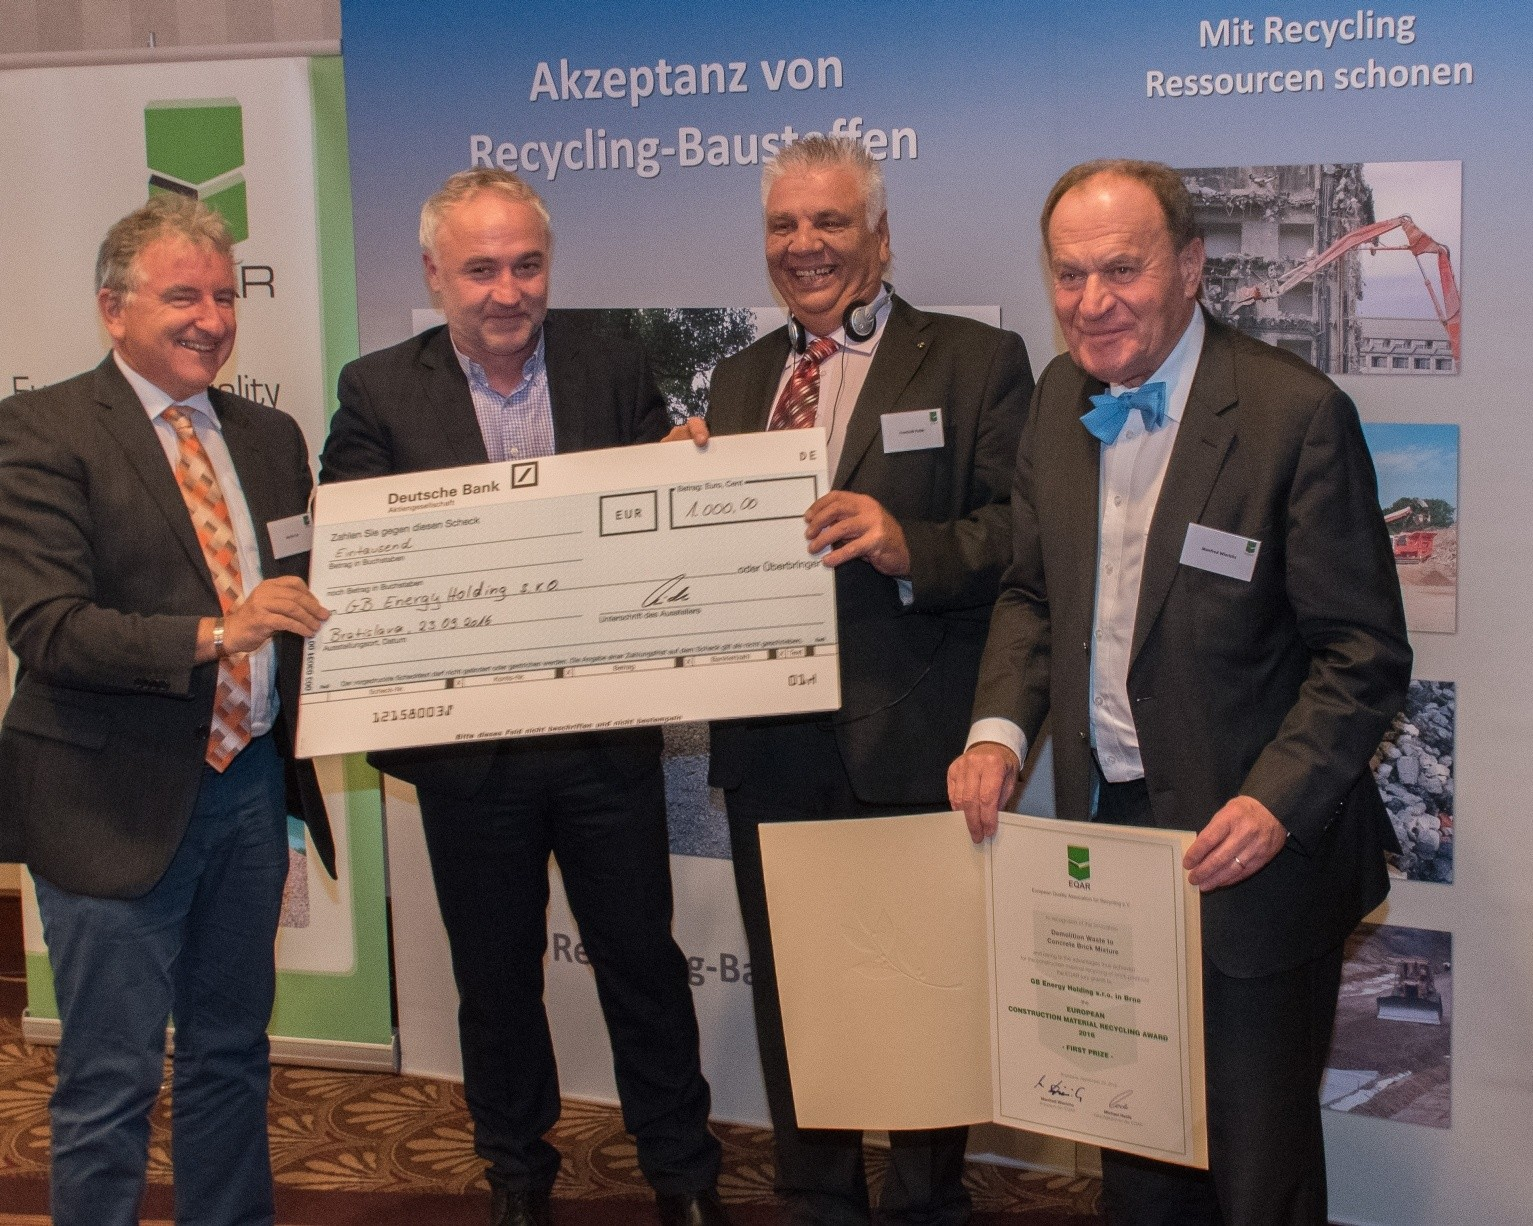 EQAR congress discusses recycling in Europe